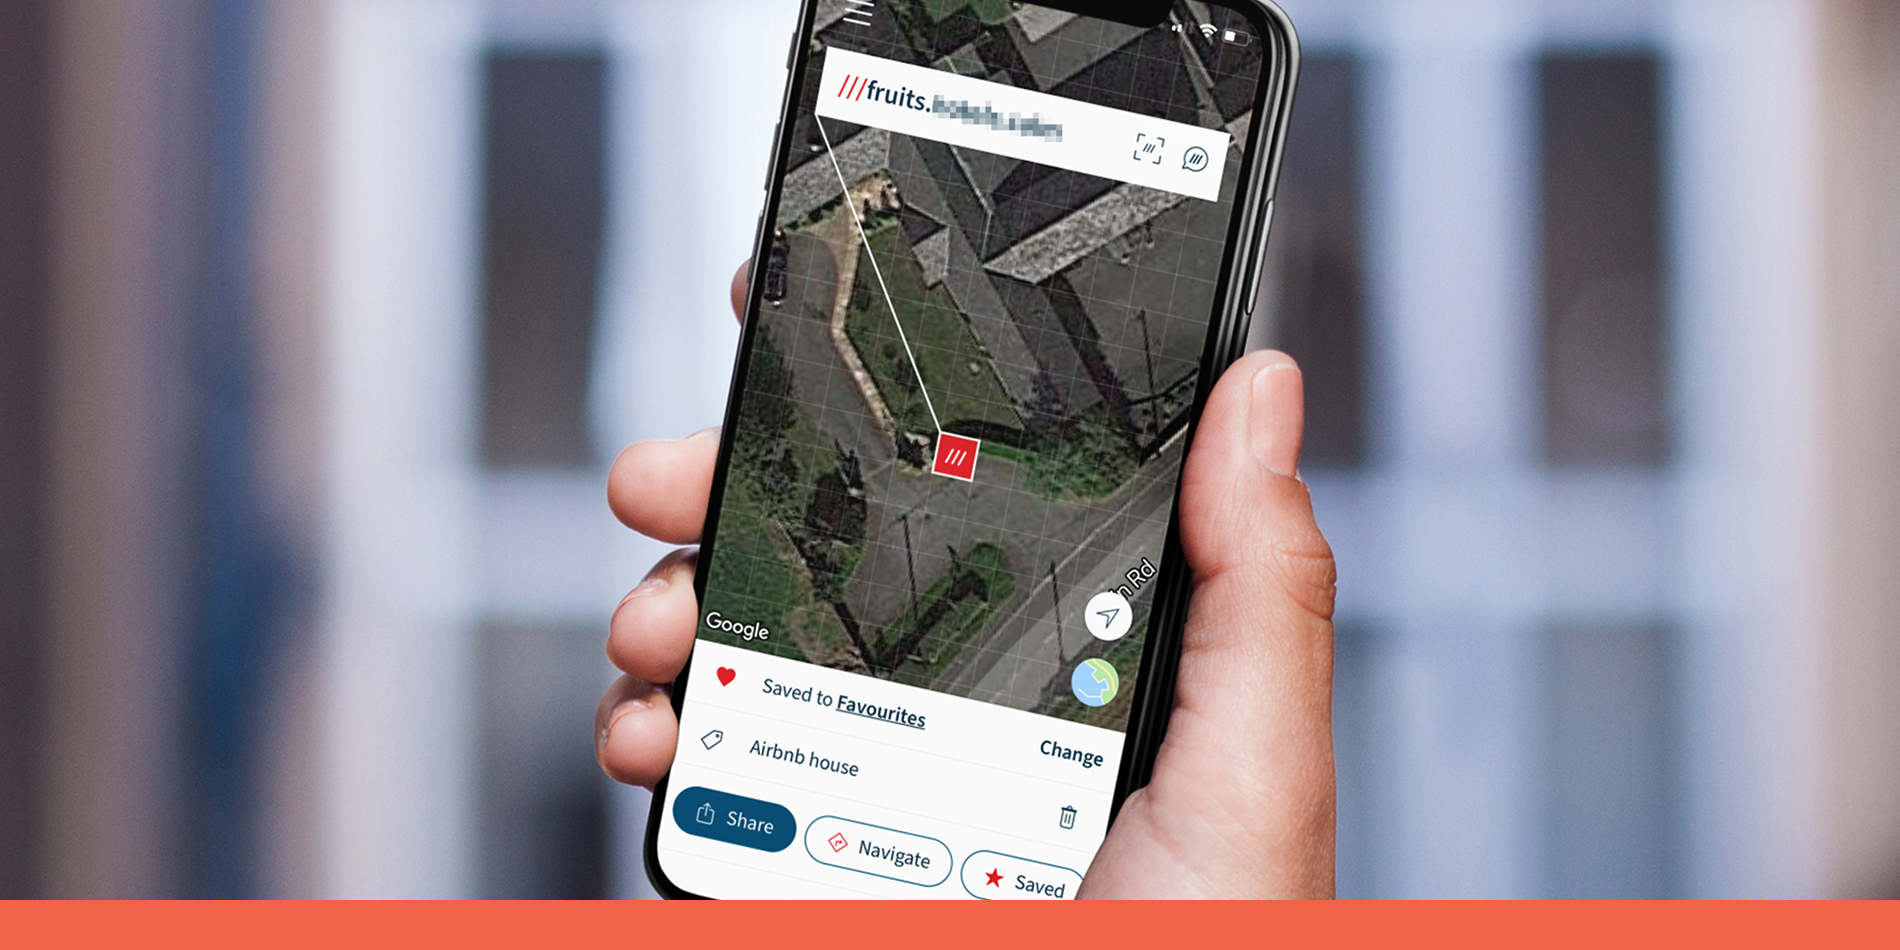 What3words saved location function in use